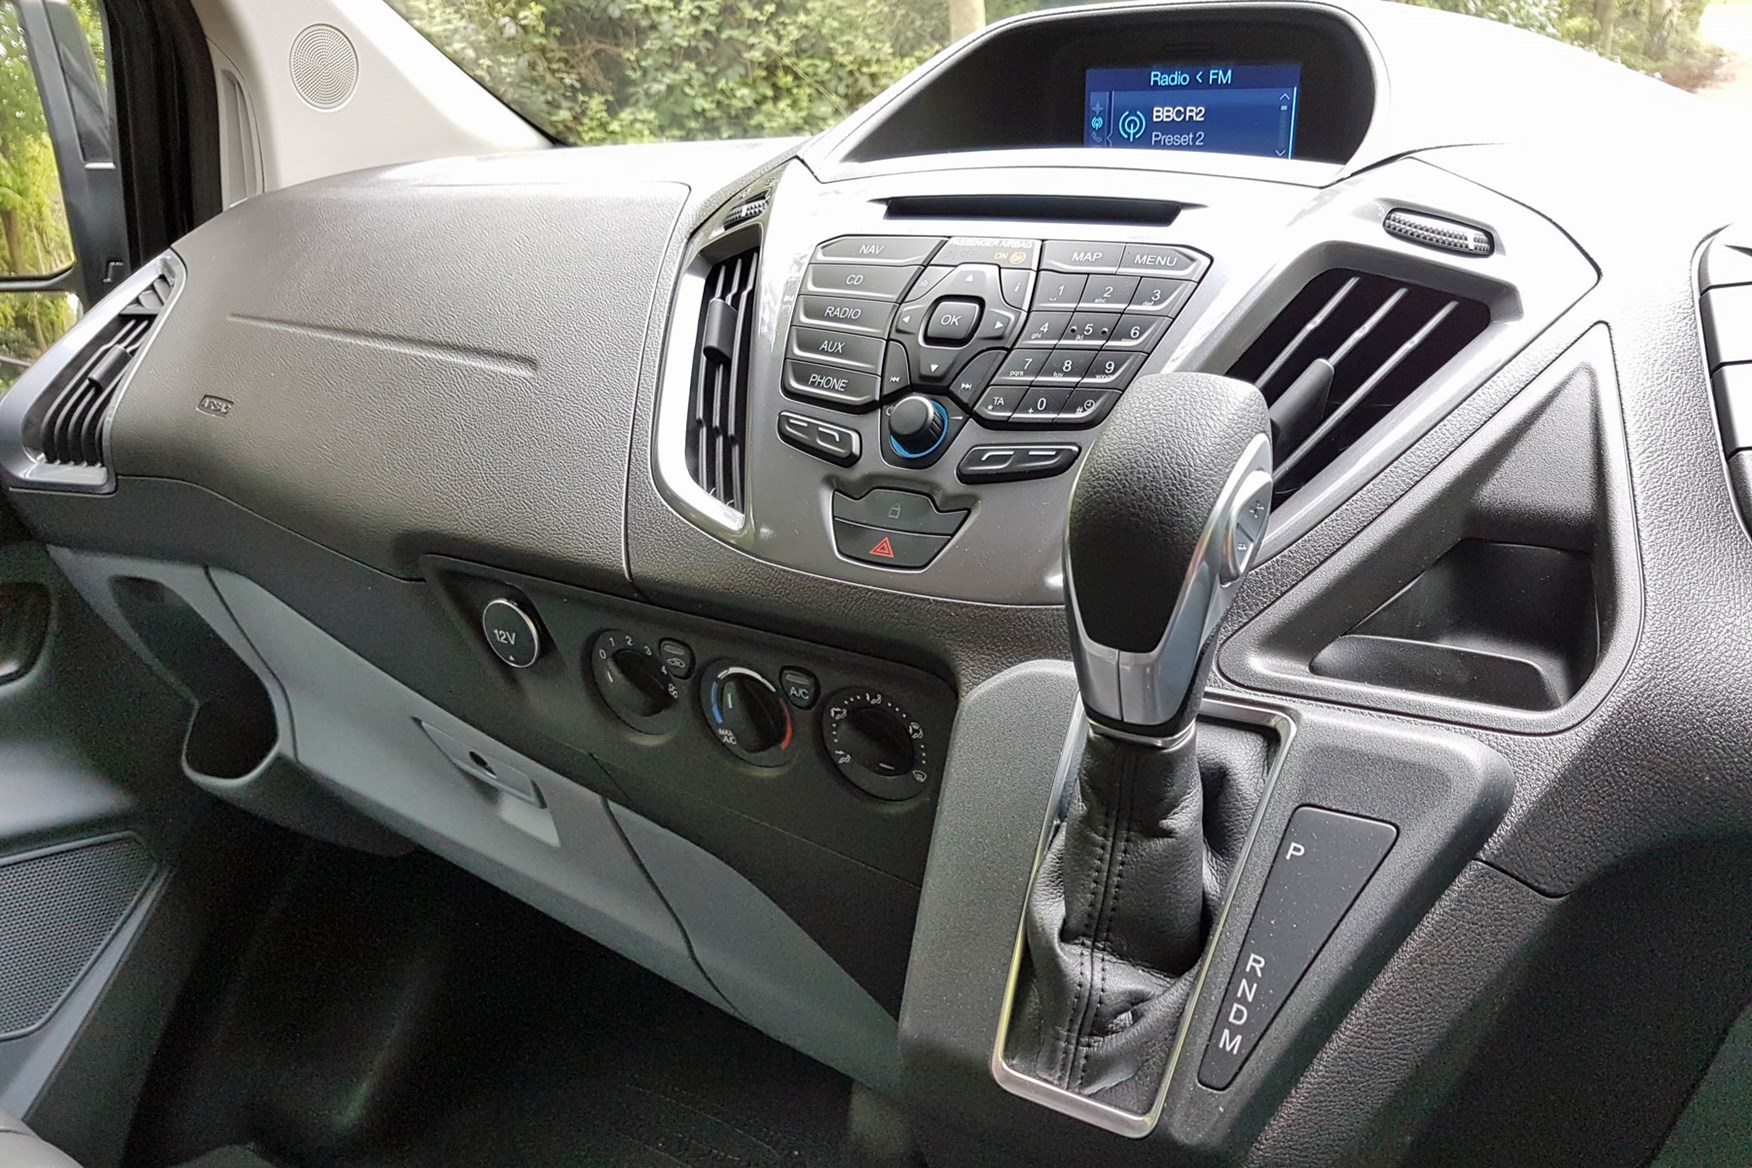 Ford Transit Custom Sport automatic gearshifter